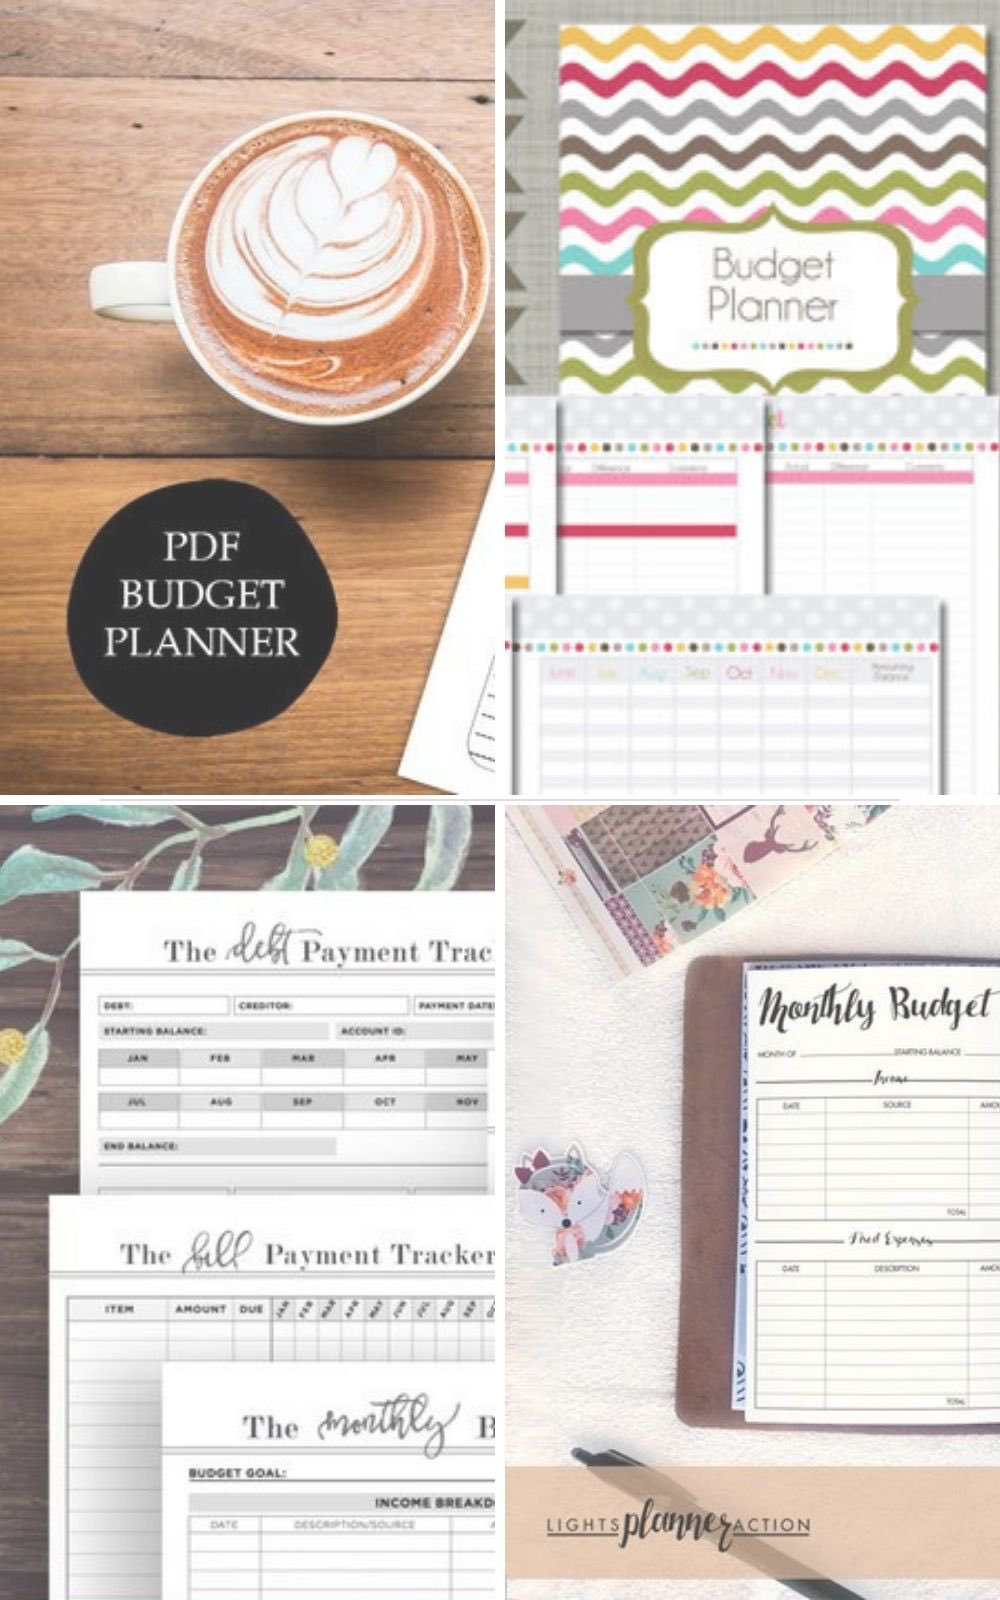 The best printable budget planners and templates #budgeting #saving #printables